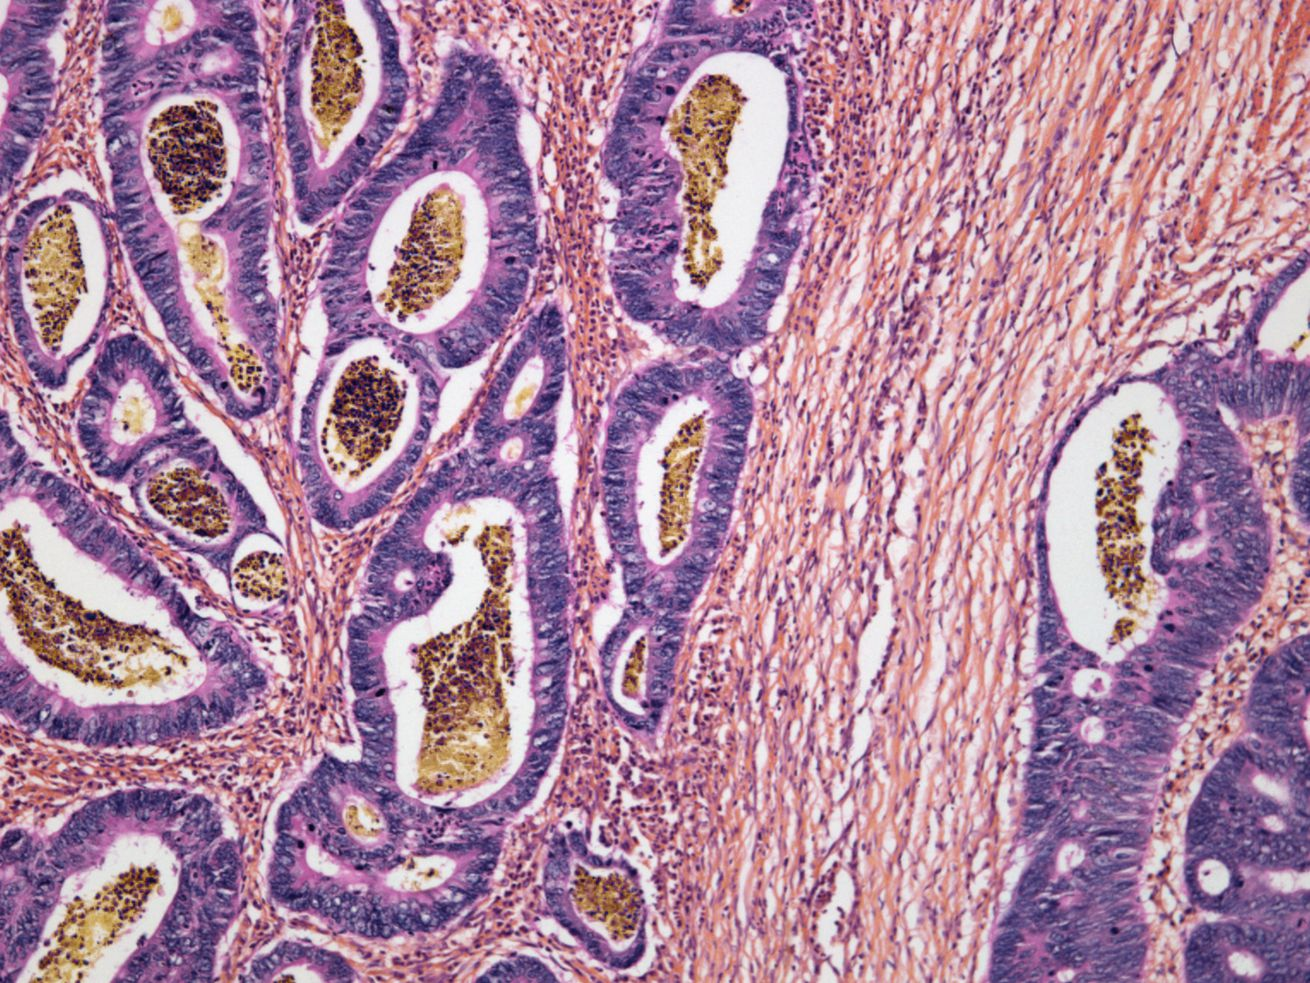 A micrograph of colon cancer cells. Overall, those born in 1990 have double the risk of developing colon cancer and four times the risk of getting rectal cancer compared to those born around 1950.